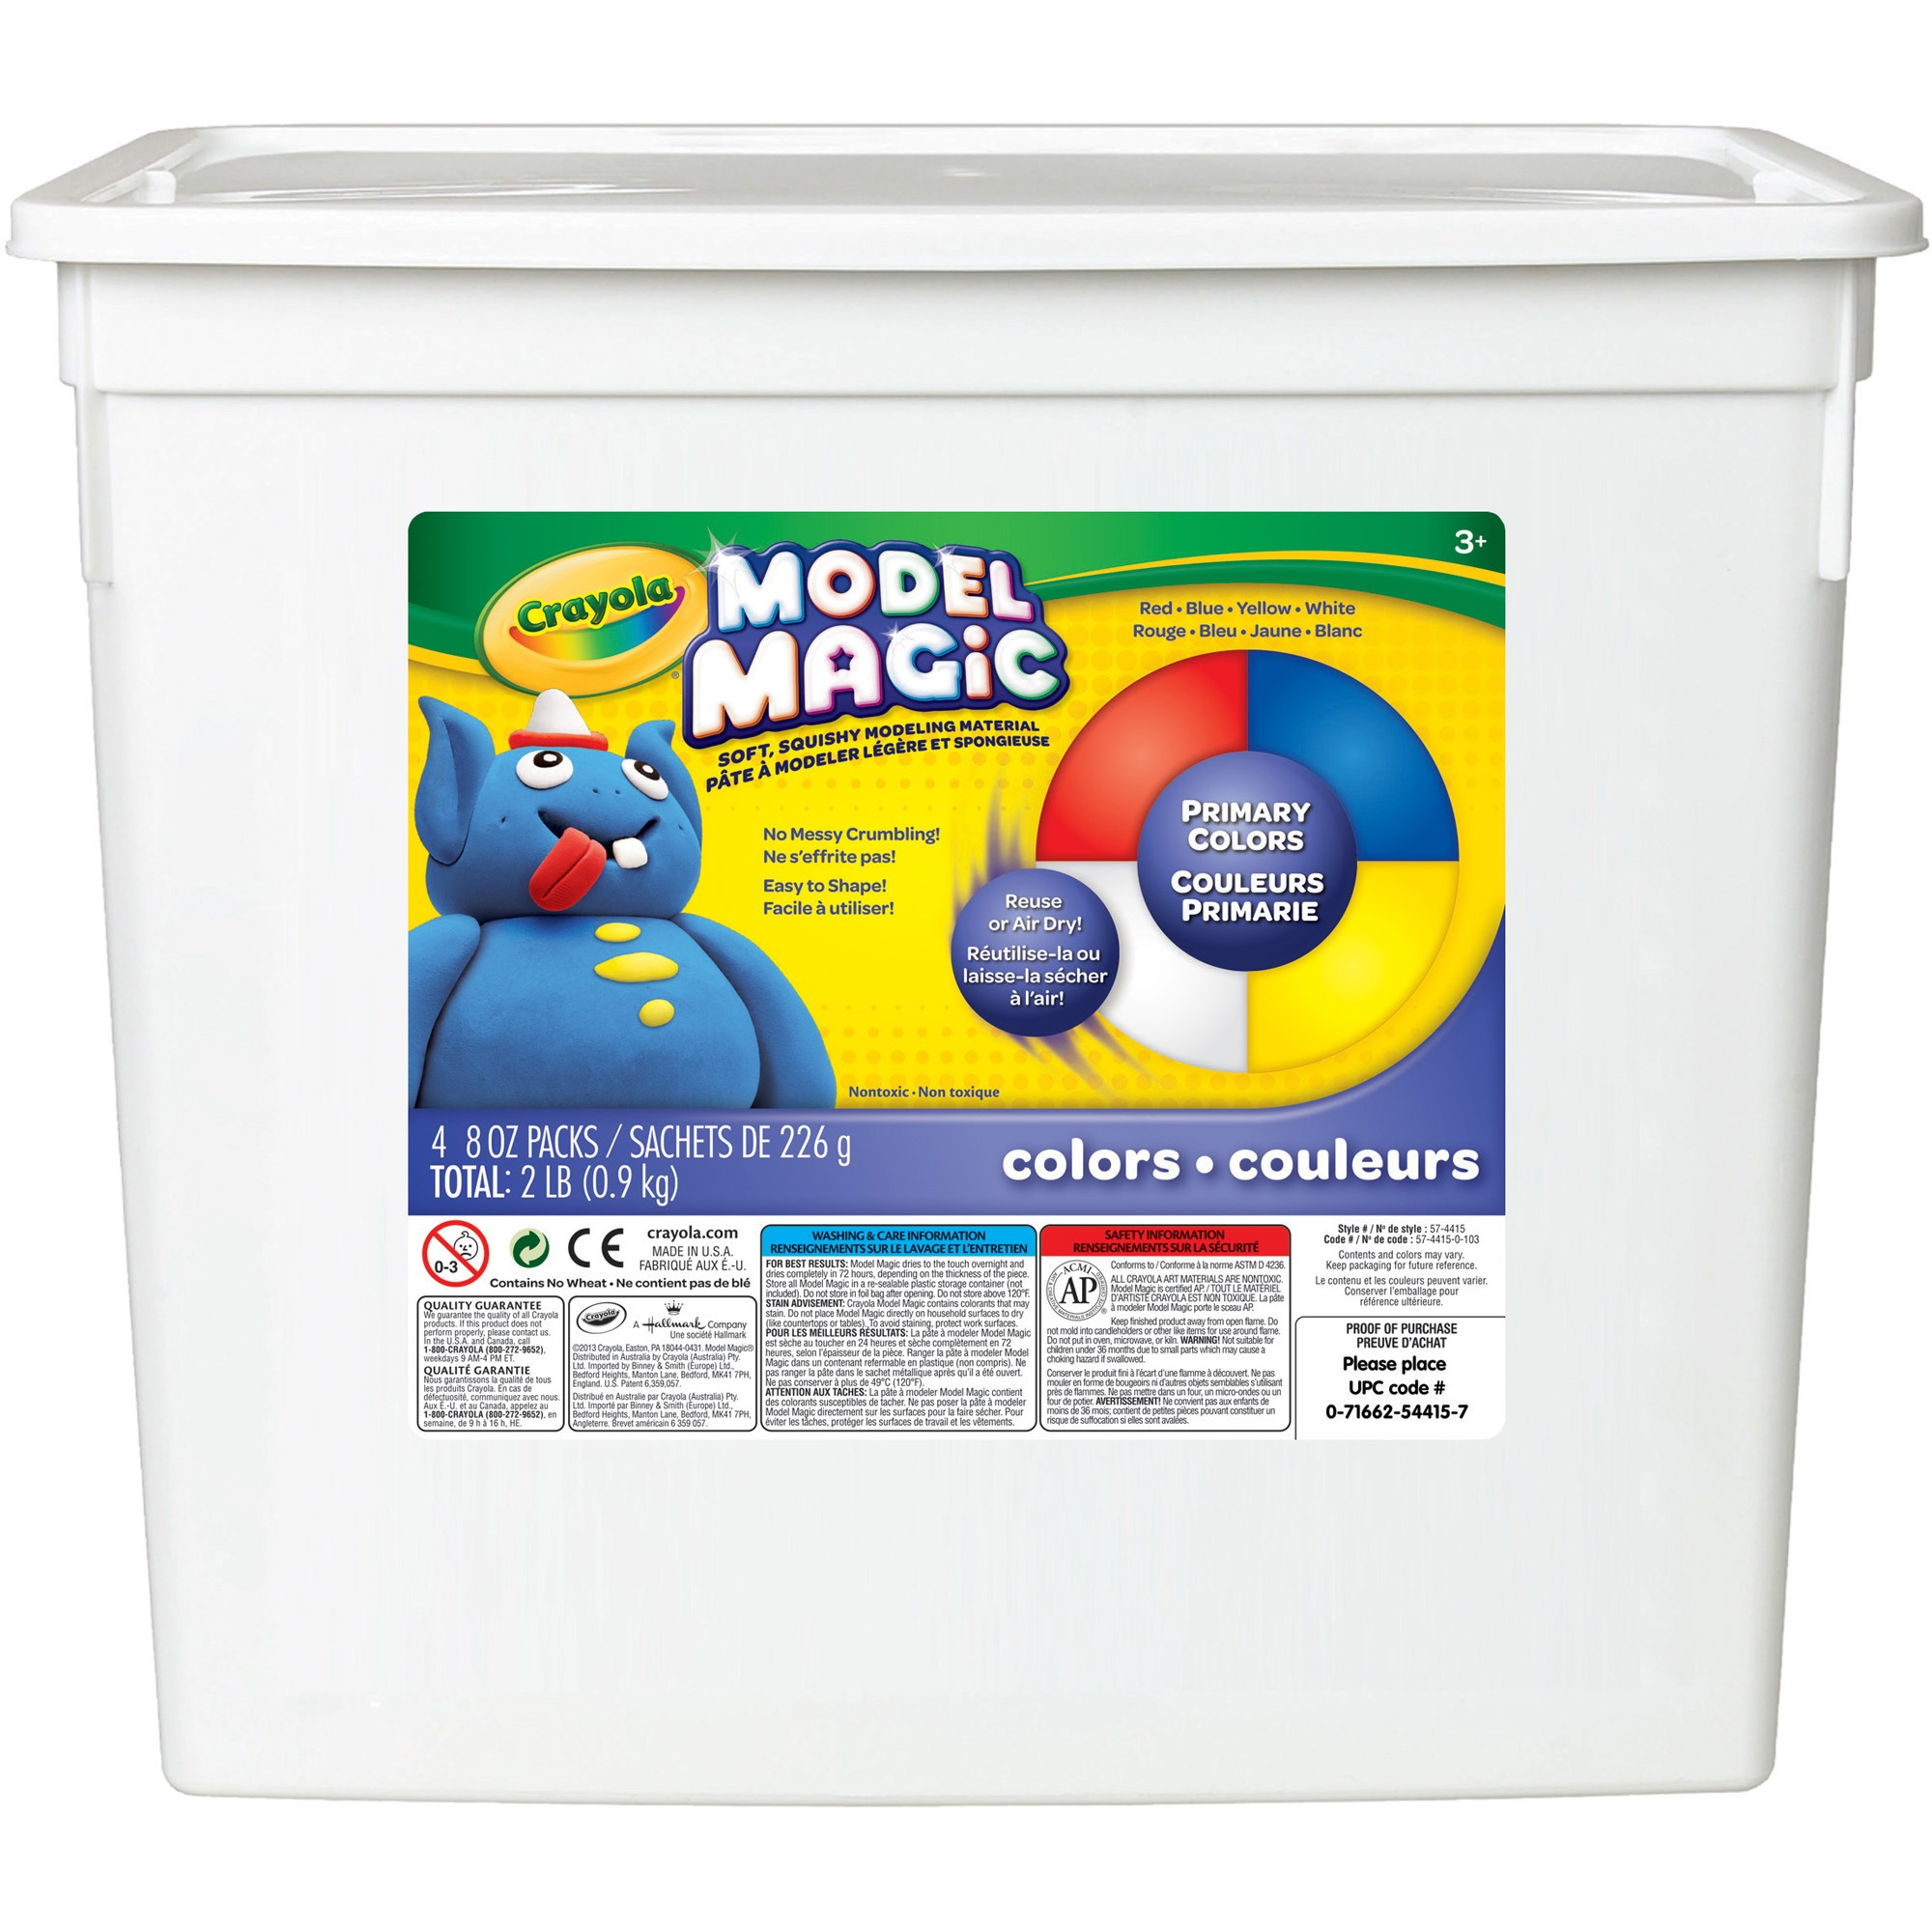 Crayola Model Magic Modeling Compound, 8 oz each Blue Red White Yellow, 2lbs. by Crayola, LLC